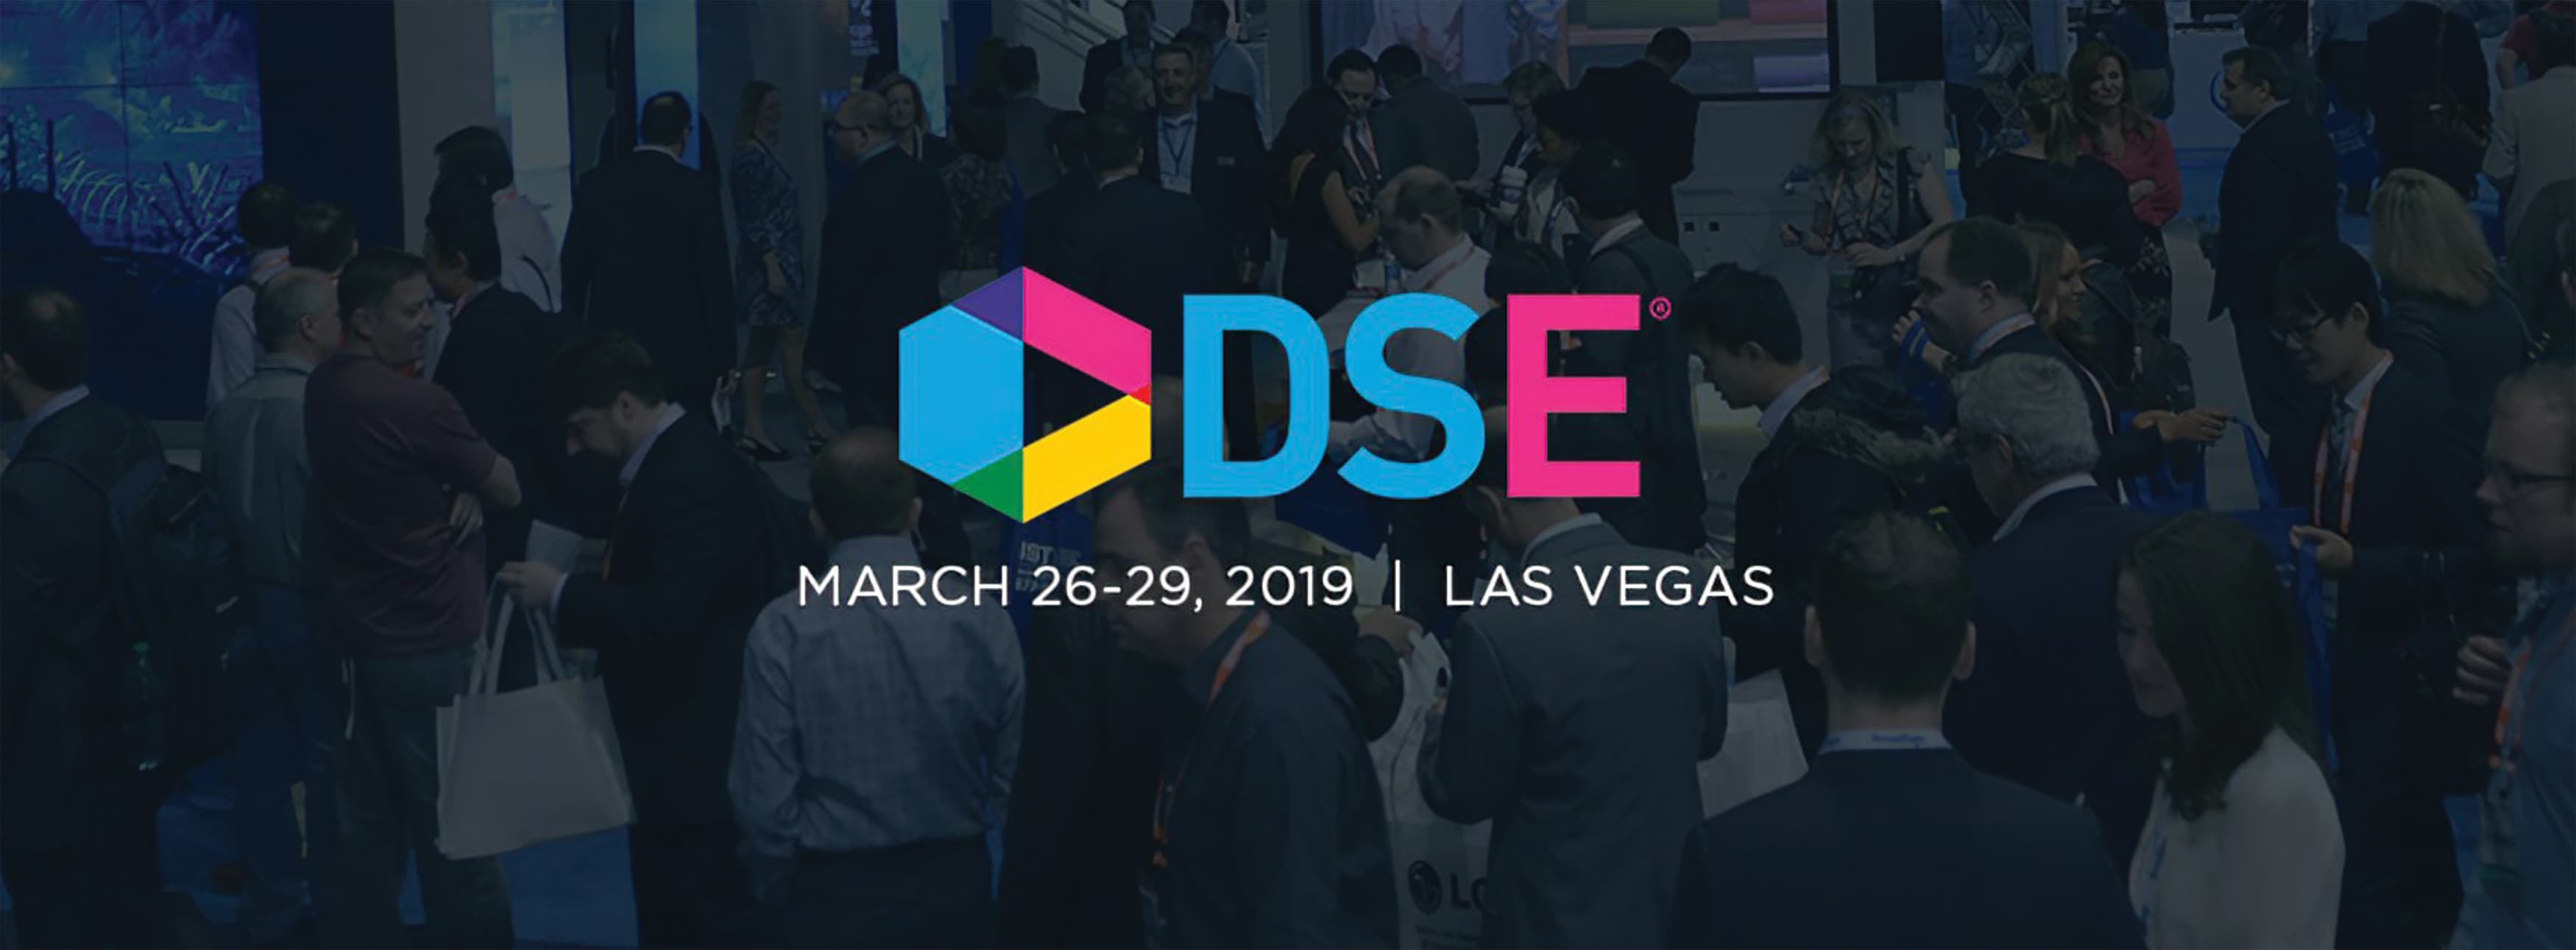 RSM's time at the 2018 Digital Signage Expo led to five new observations on trends and exciting technologies.